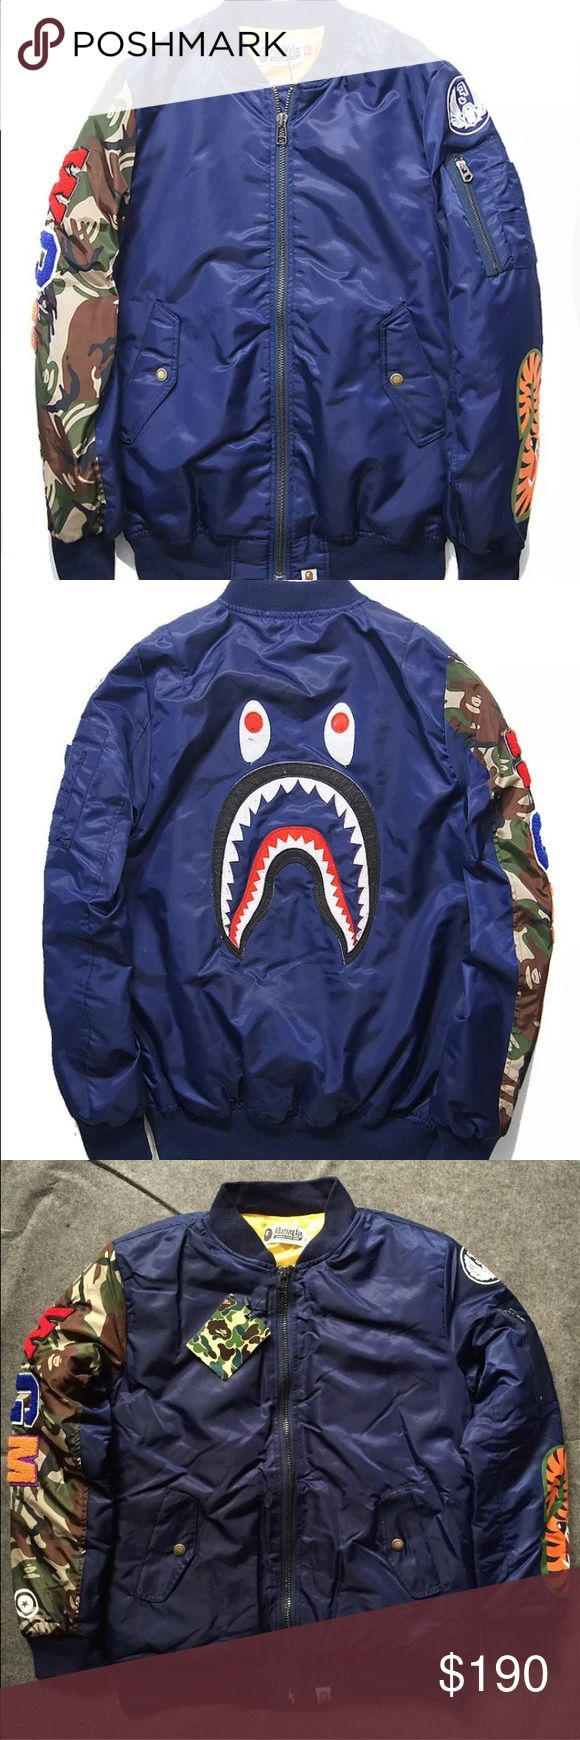 Bathing ape camo wgm bomber jacket New with tags! Bape Jackets & Coats Bomber & Varsity